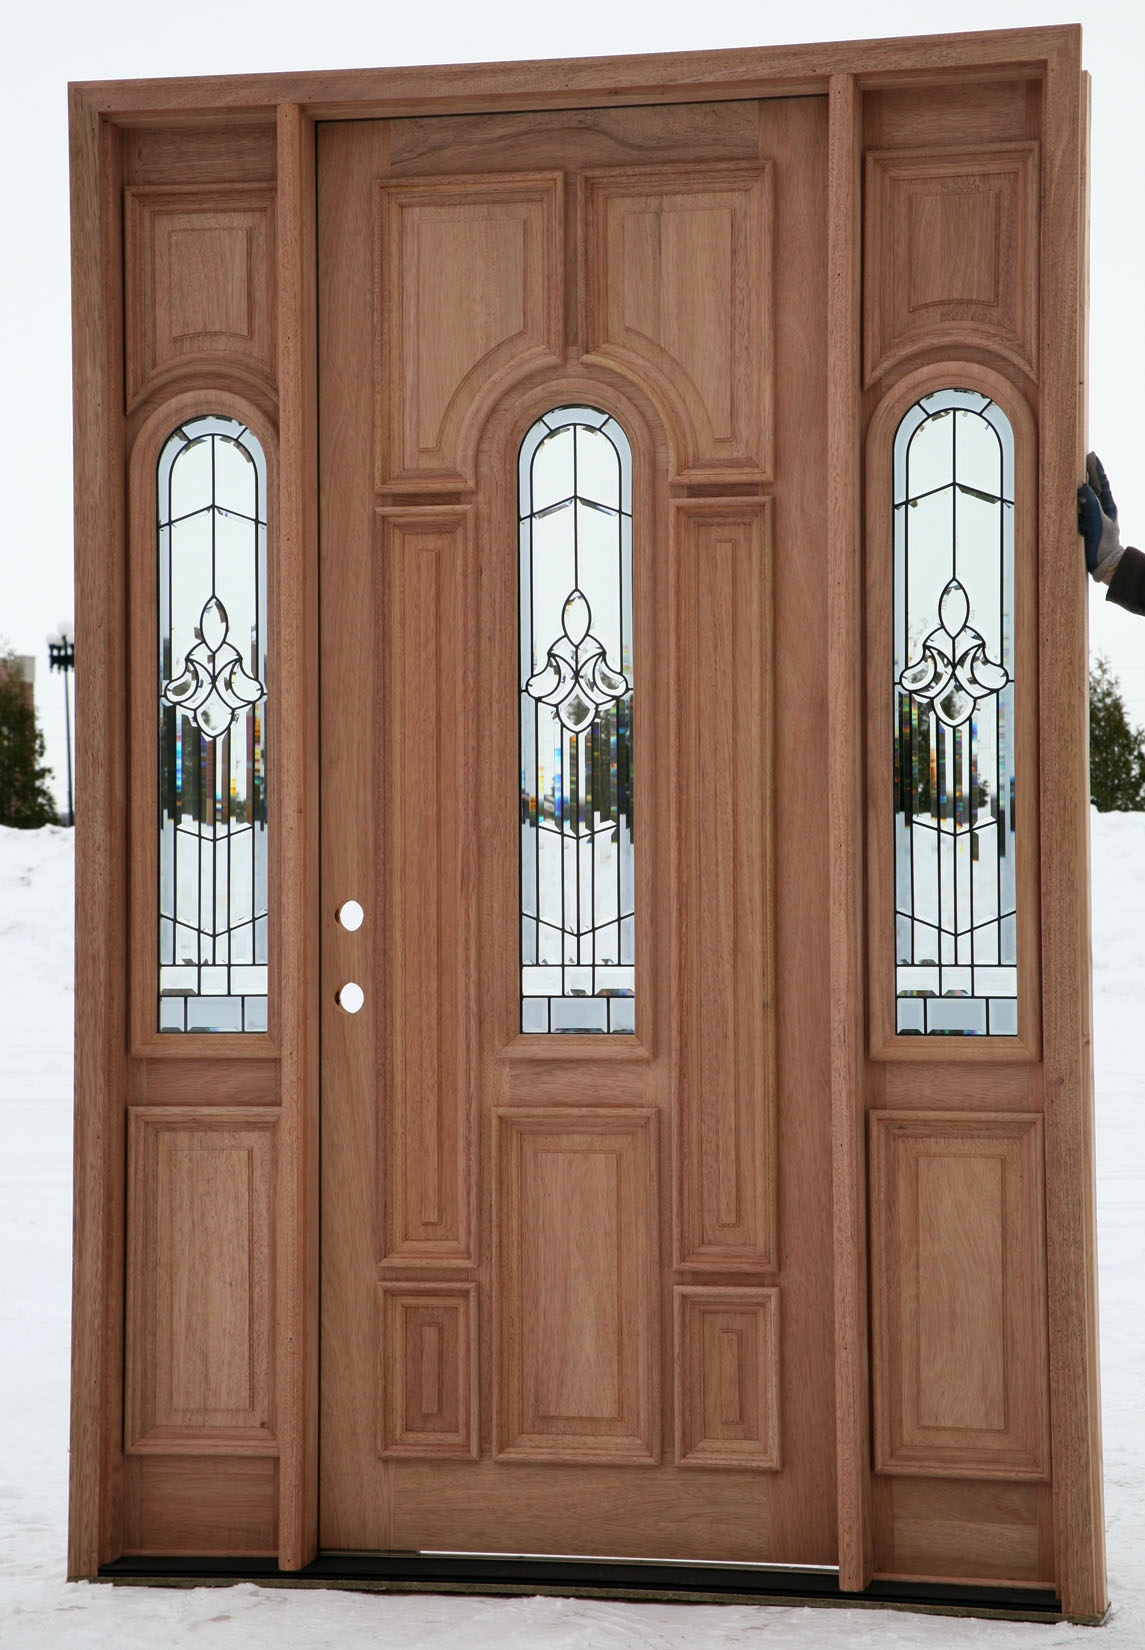 1650 #714A36 Exterior Doors Prehung With Sidelights picture/photo Entry Doors With Sidelights 41991145